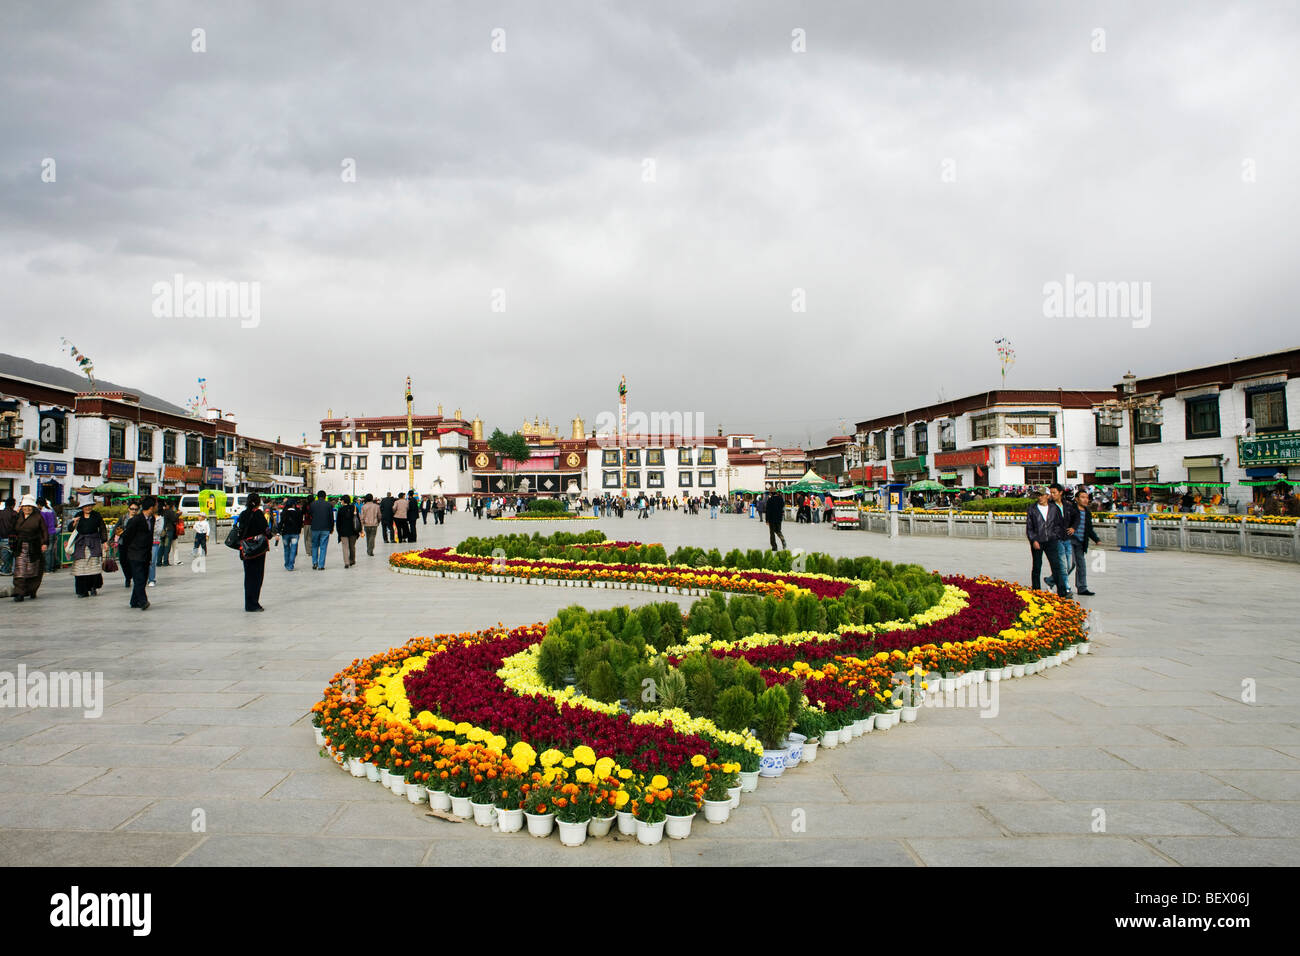 Square in Tibet, rows of flowers. - Stock Image